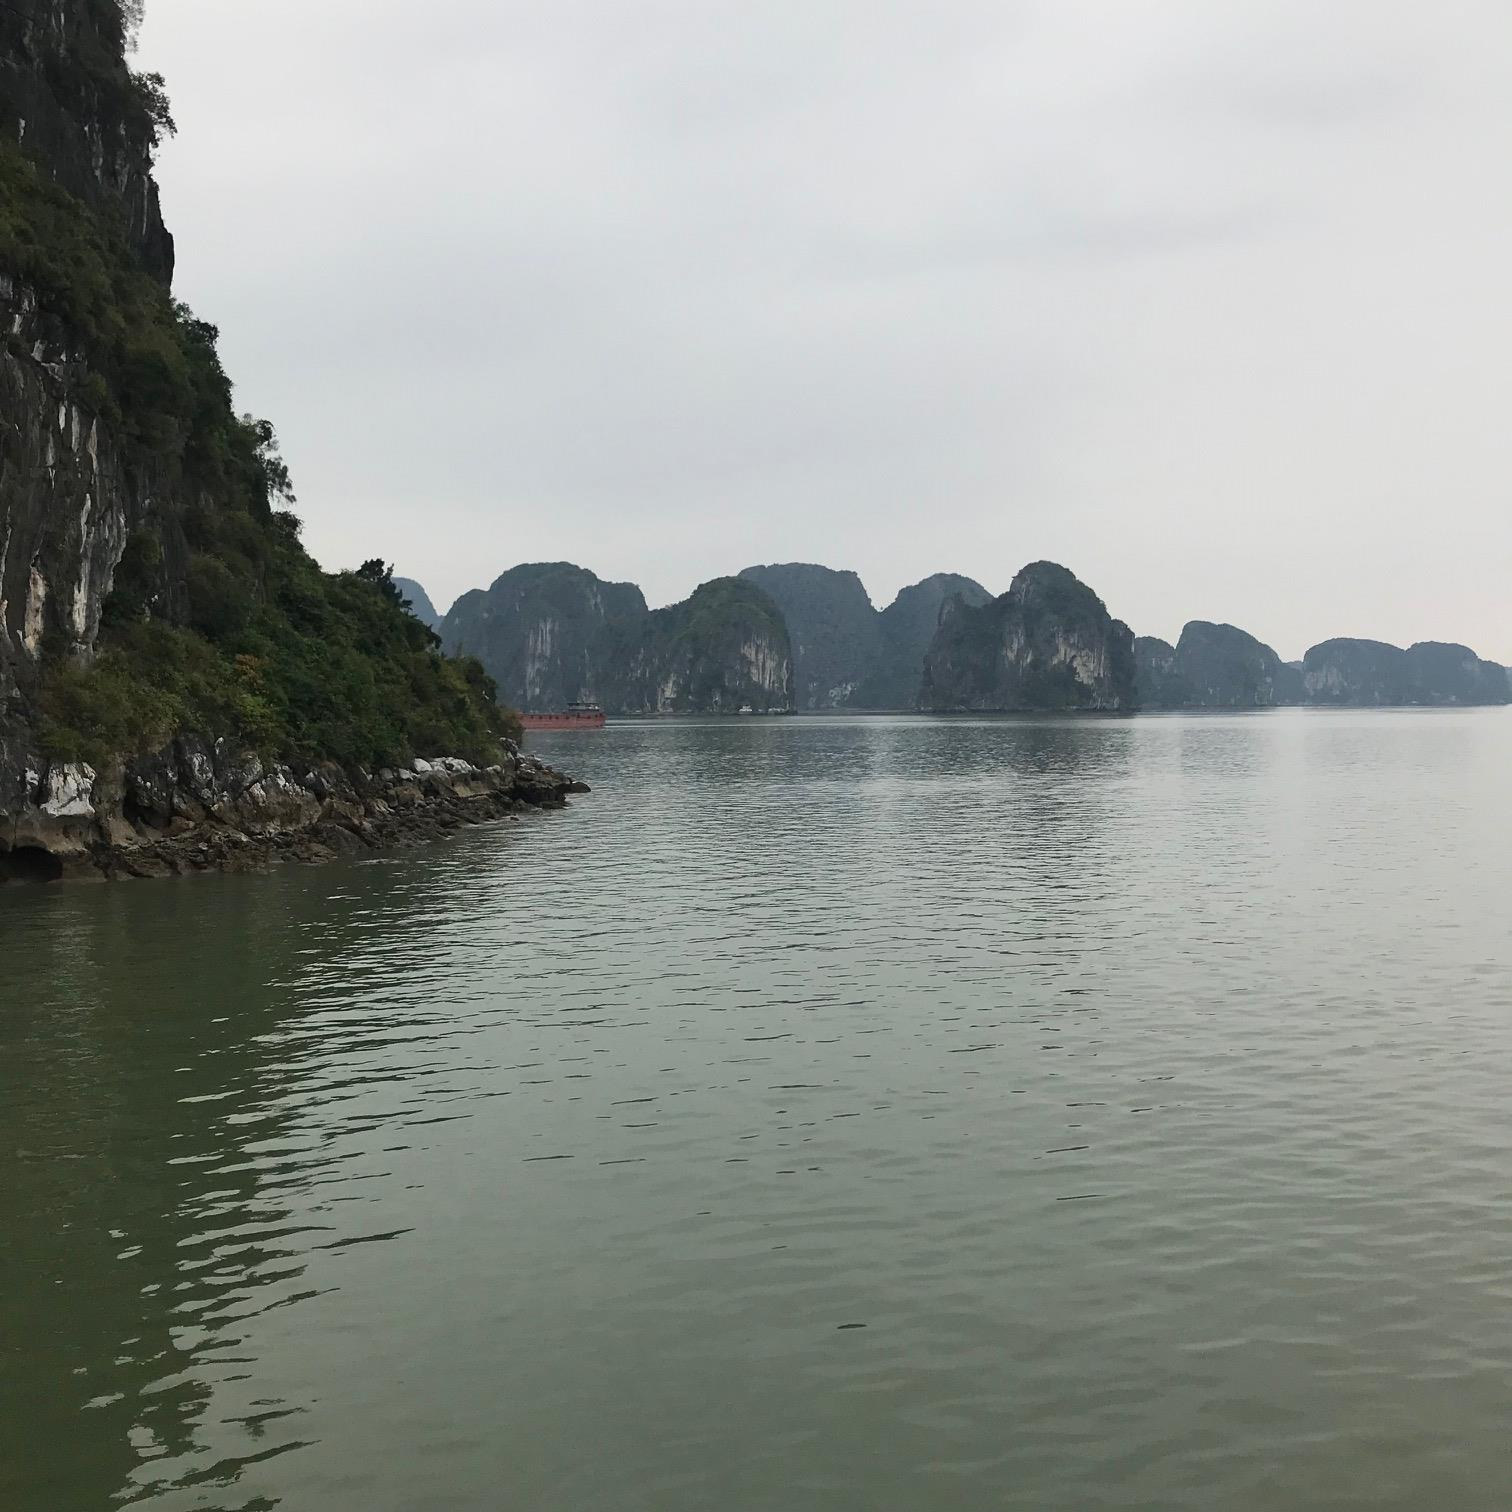 Cruising Halong Bay in Vietnam aboard the Au Co 2